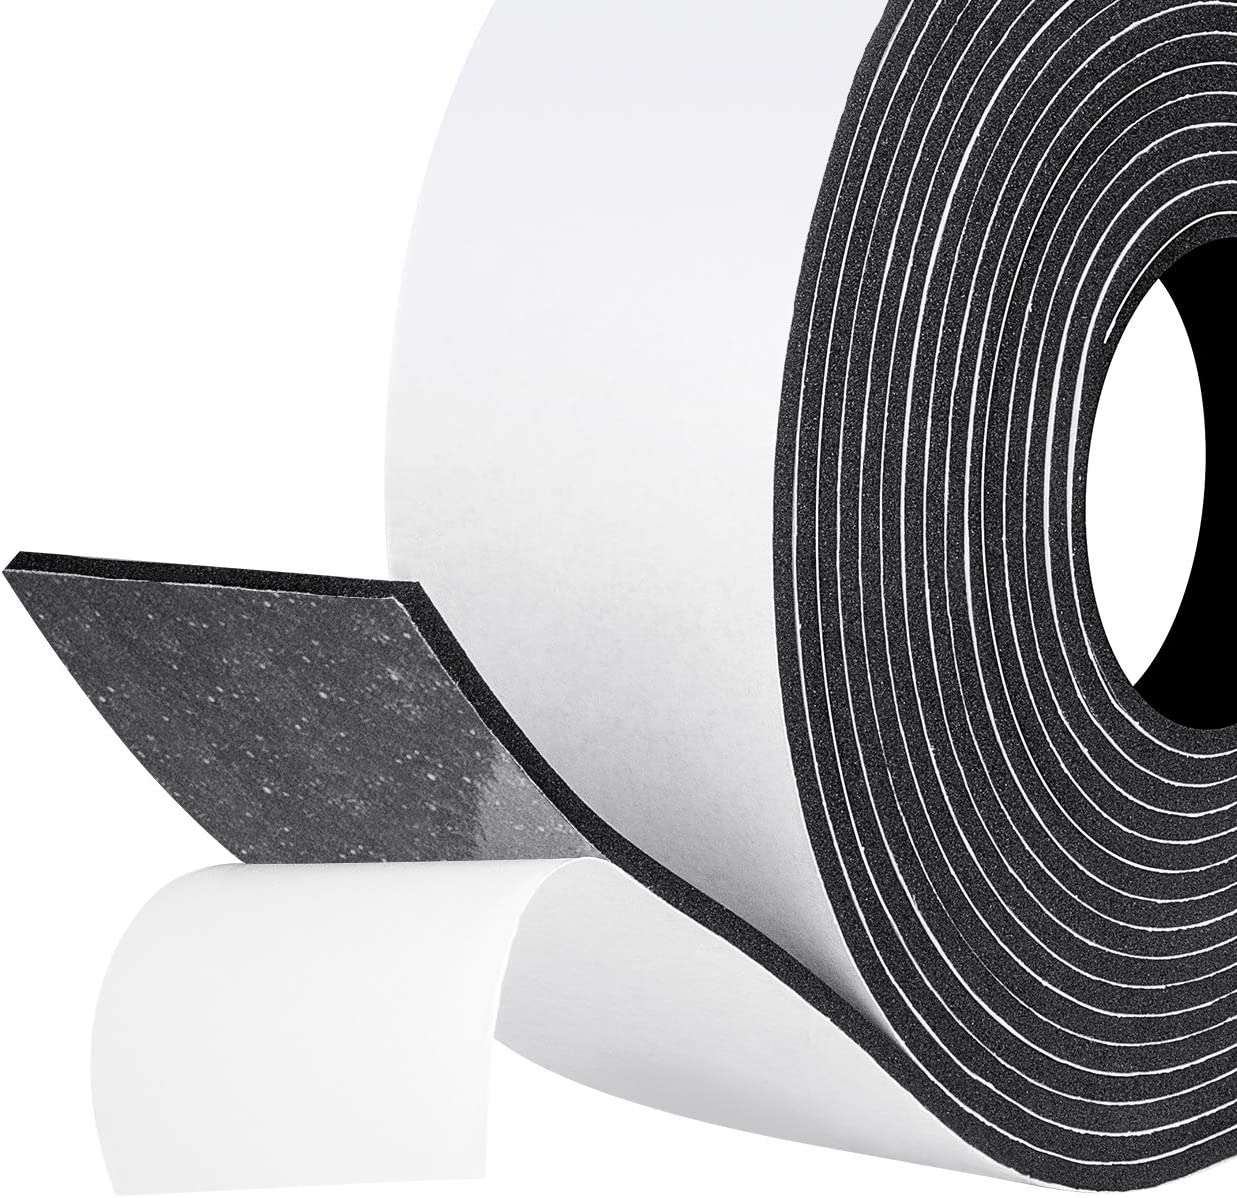 fowong Weather Stripping Foam Tape, 2 Inch Wide X 1/8 Inch Thick X 16 Feet Long Rubber Strips with Adhesive Foam Insulation Tape Window Seal Shock-Absorbing Rattle Gasket Tape 1 Roll